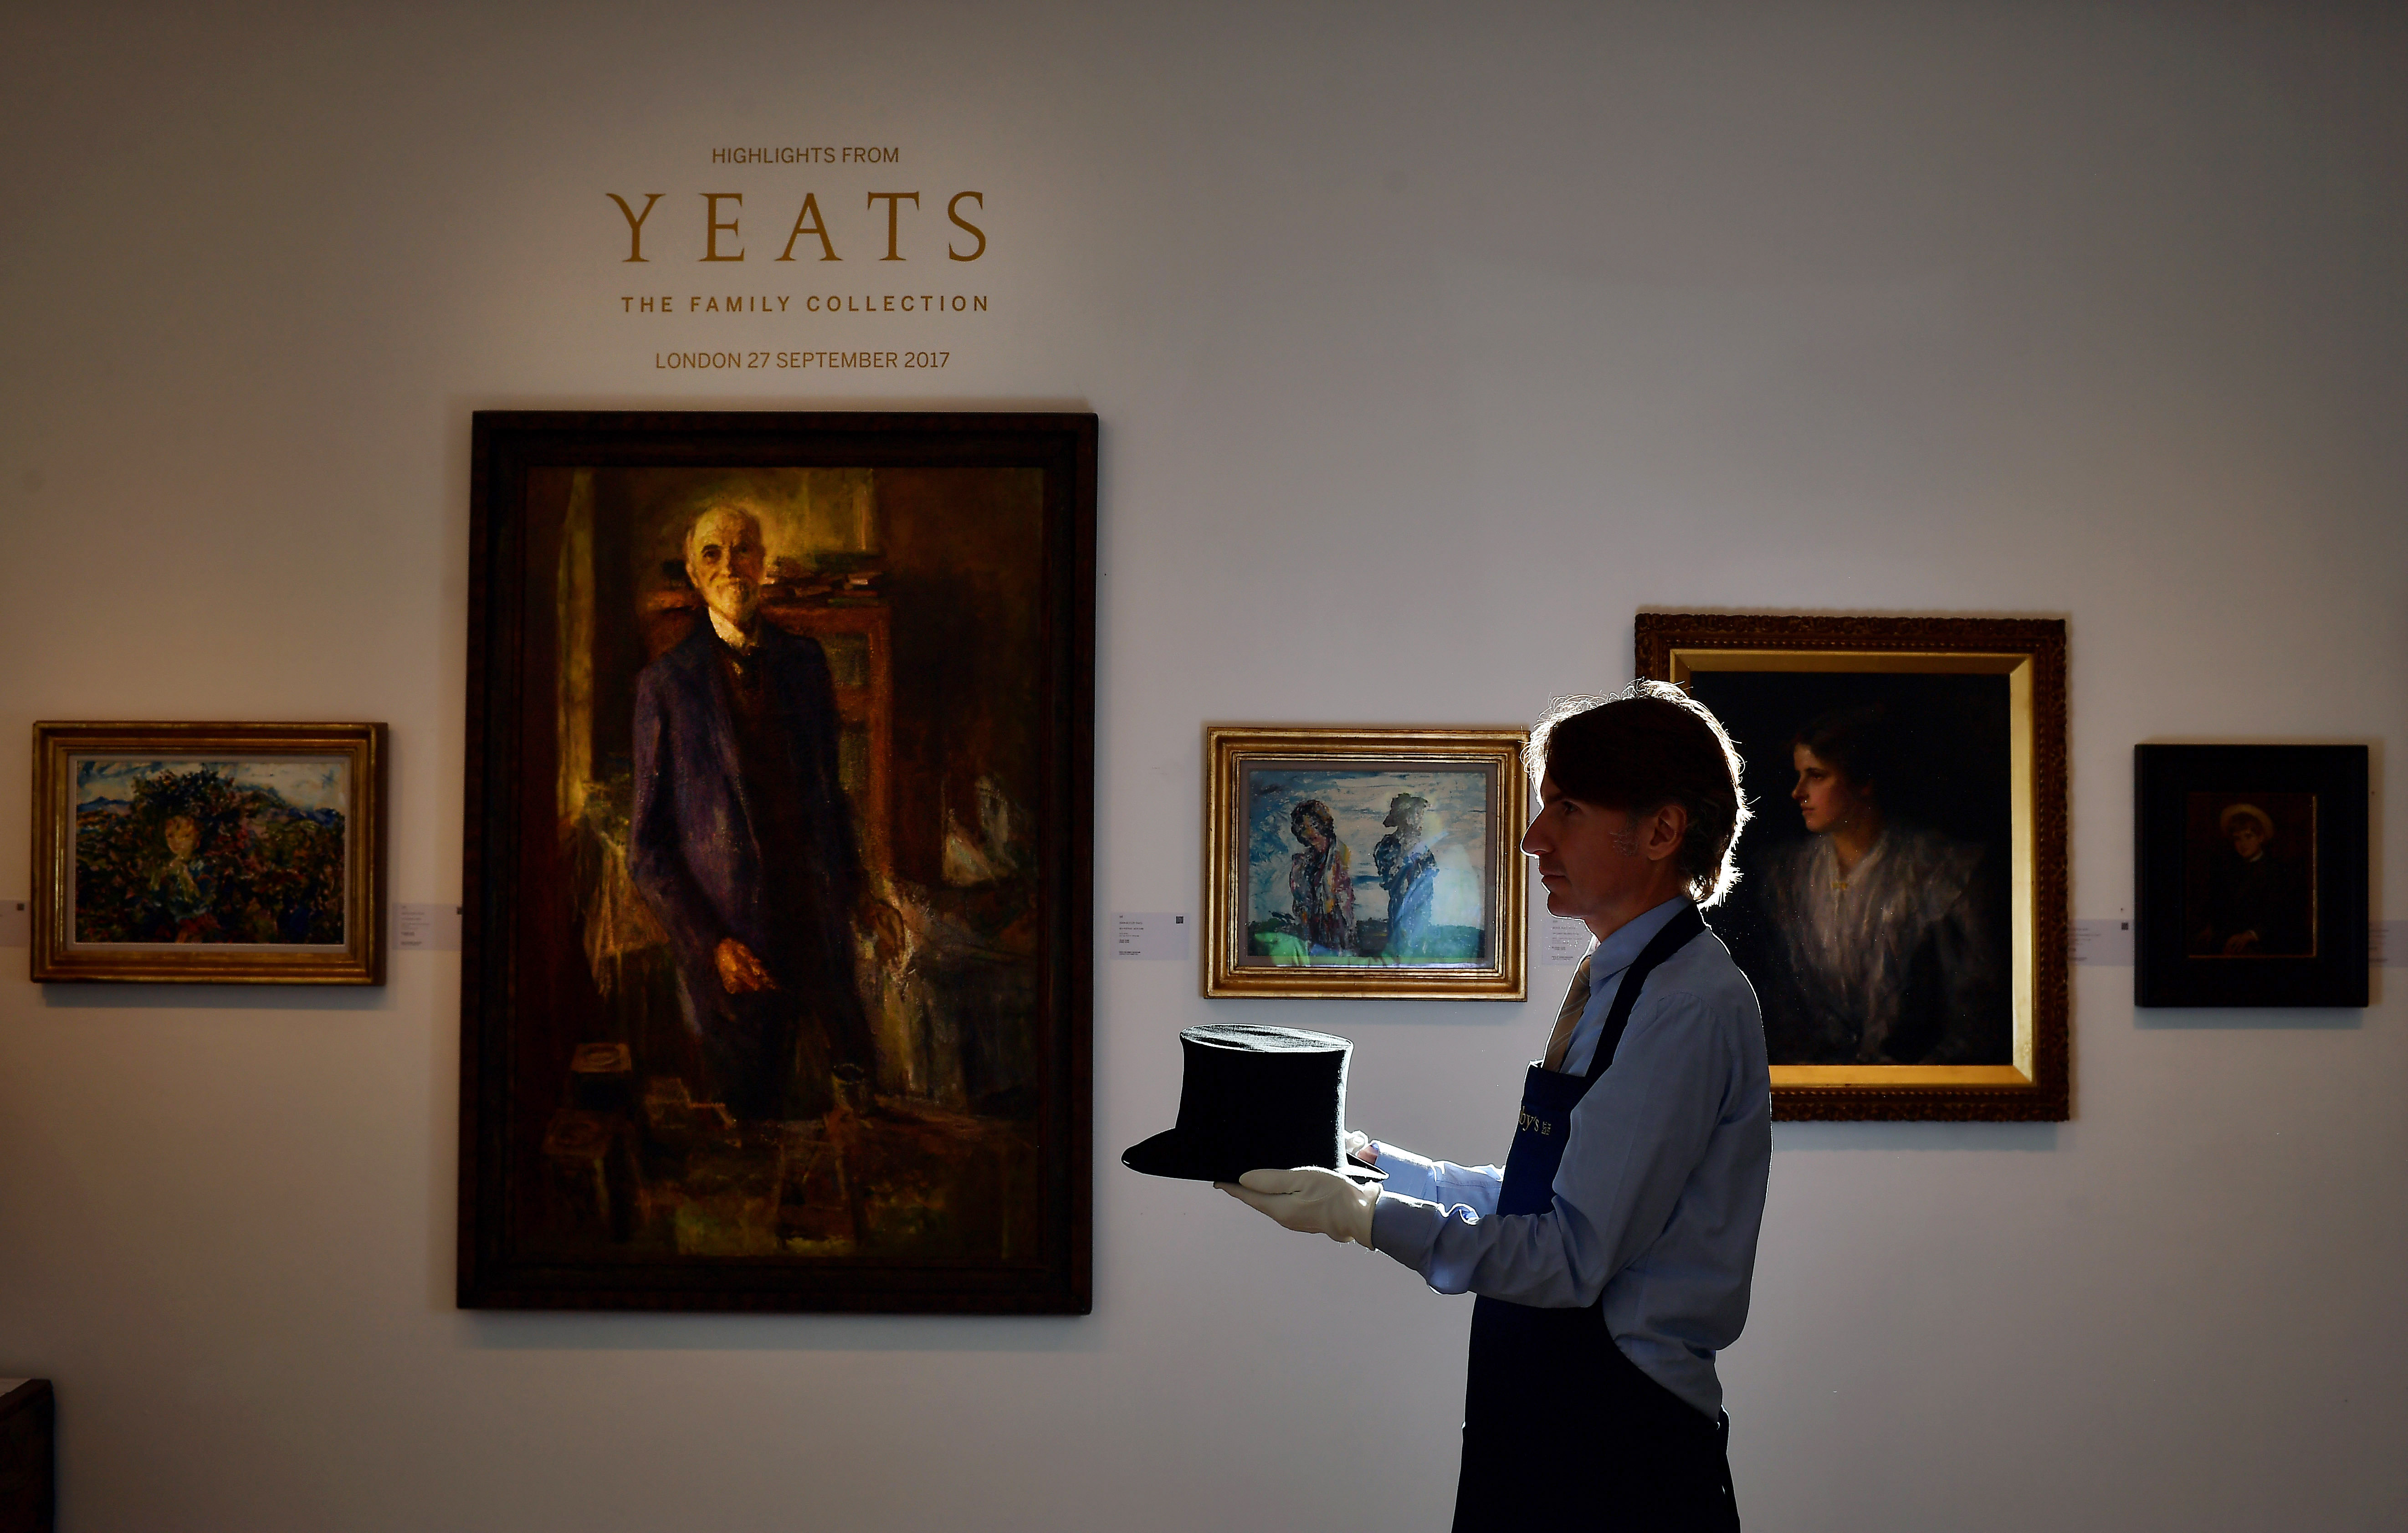 Yeats family collection